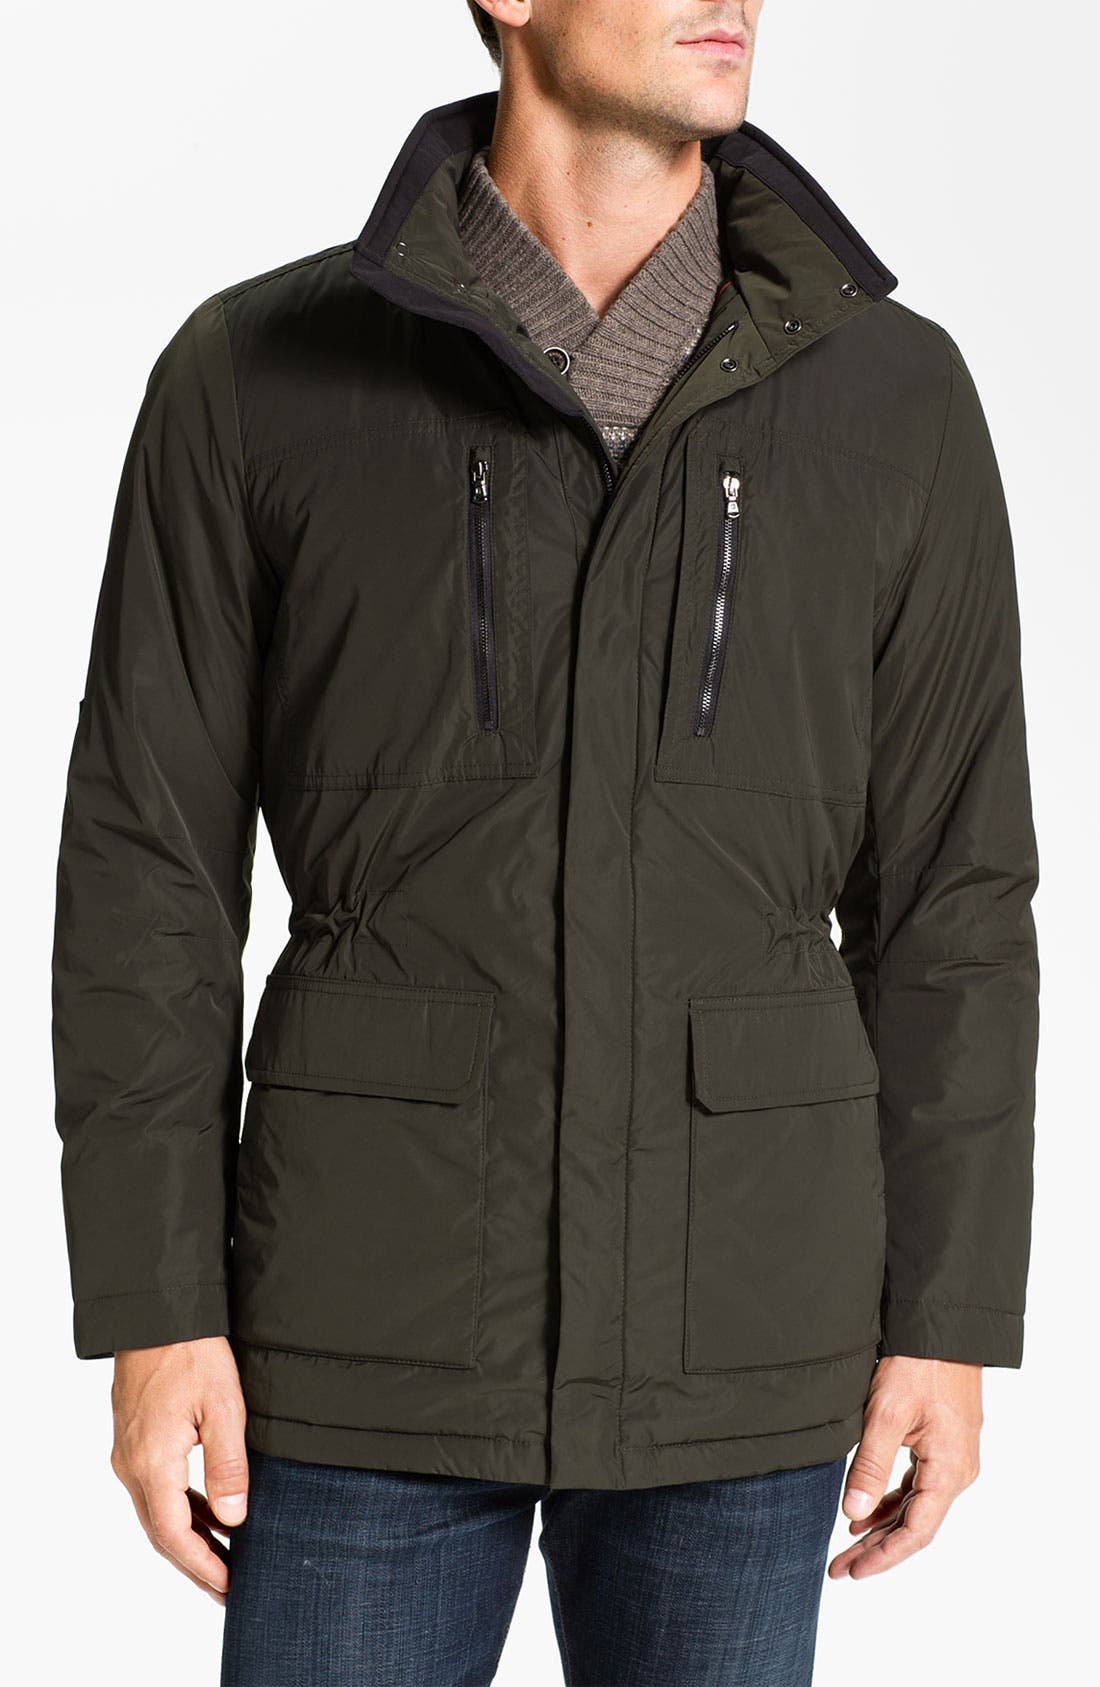 Main Image - Victorinox Swiss Army® 'Explorer' Insulated Jacket (Online Exclusive)